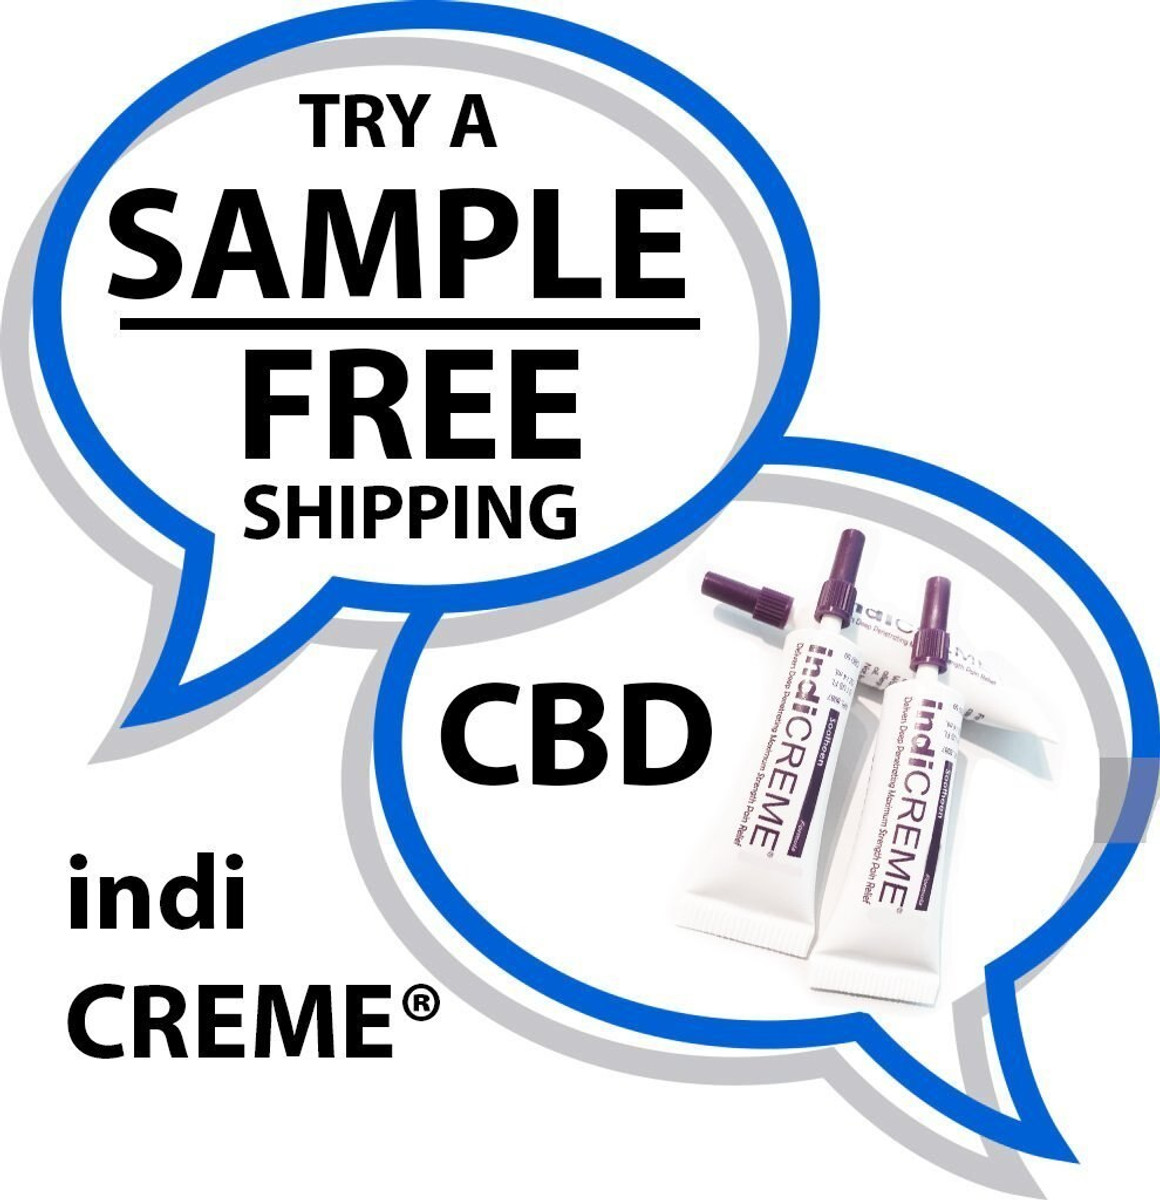 Not sure yet? Why not try a sample of indiCREME CBD and get FREE shipping?